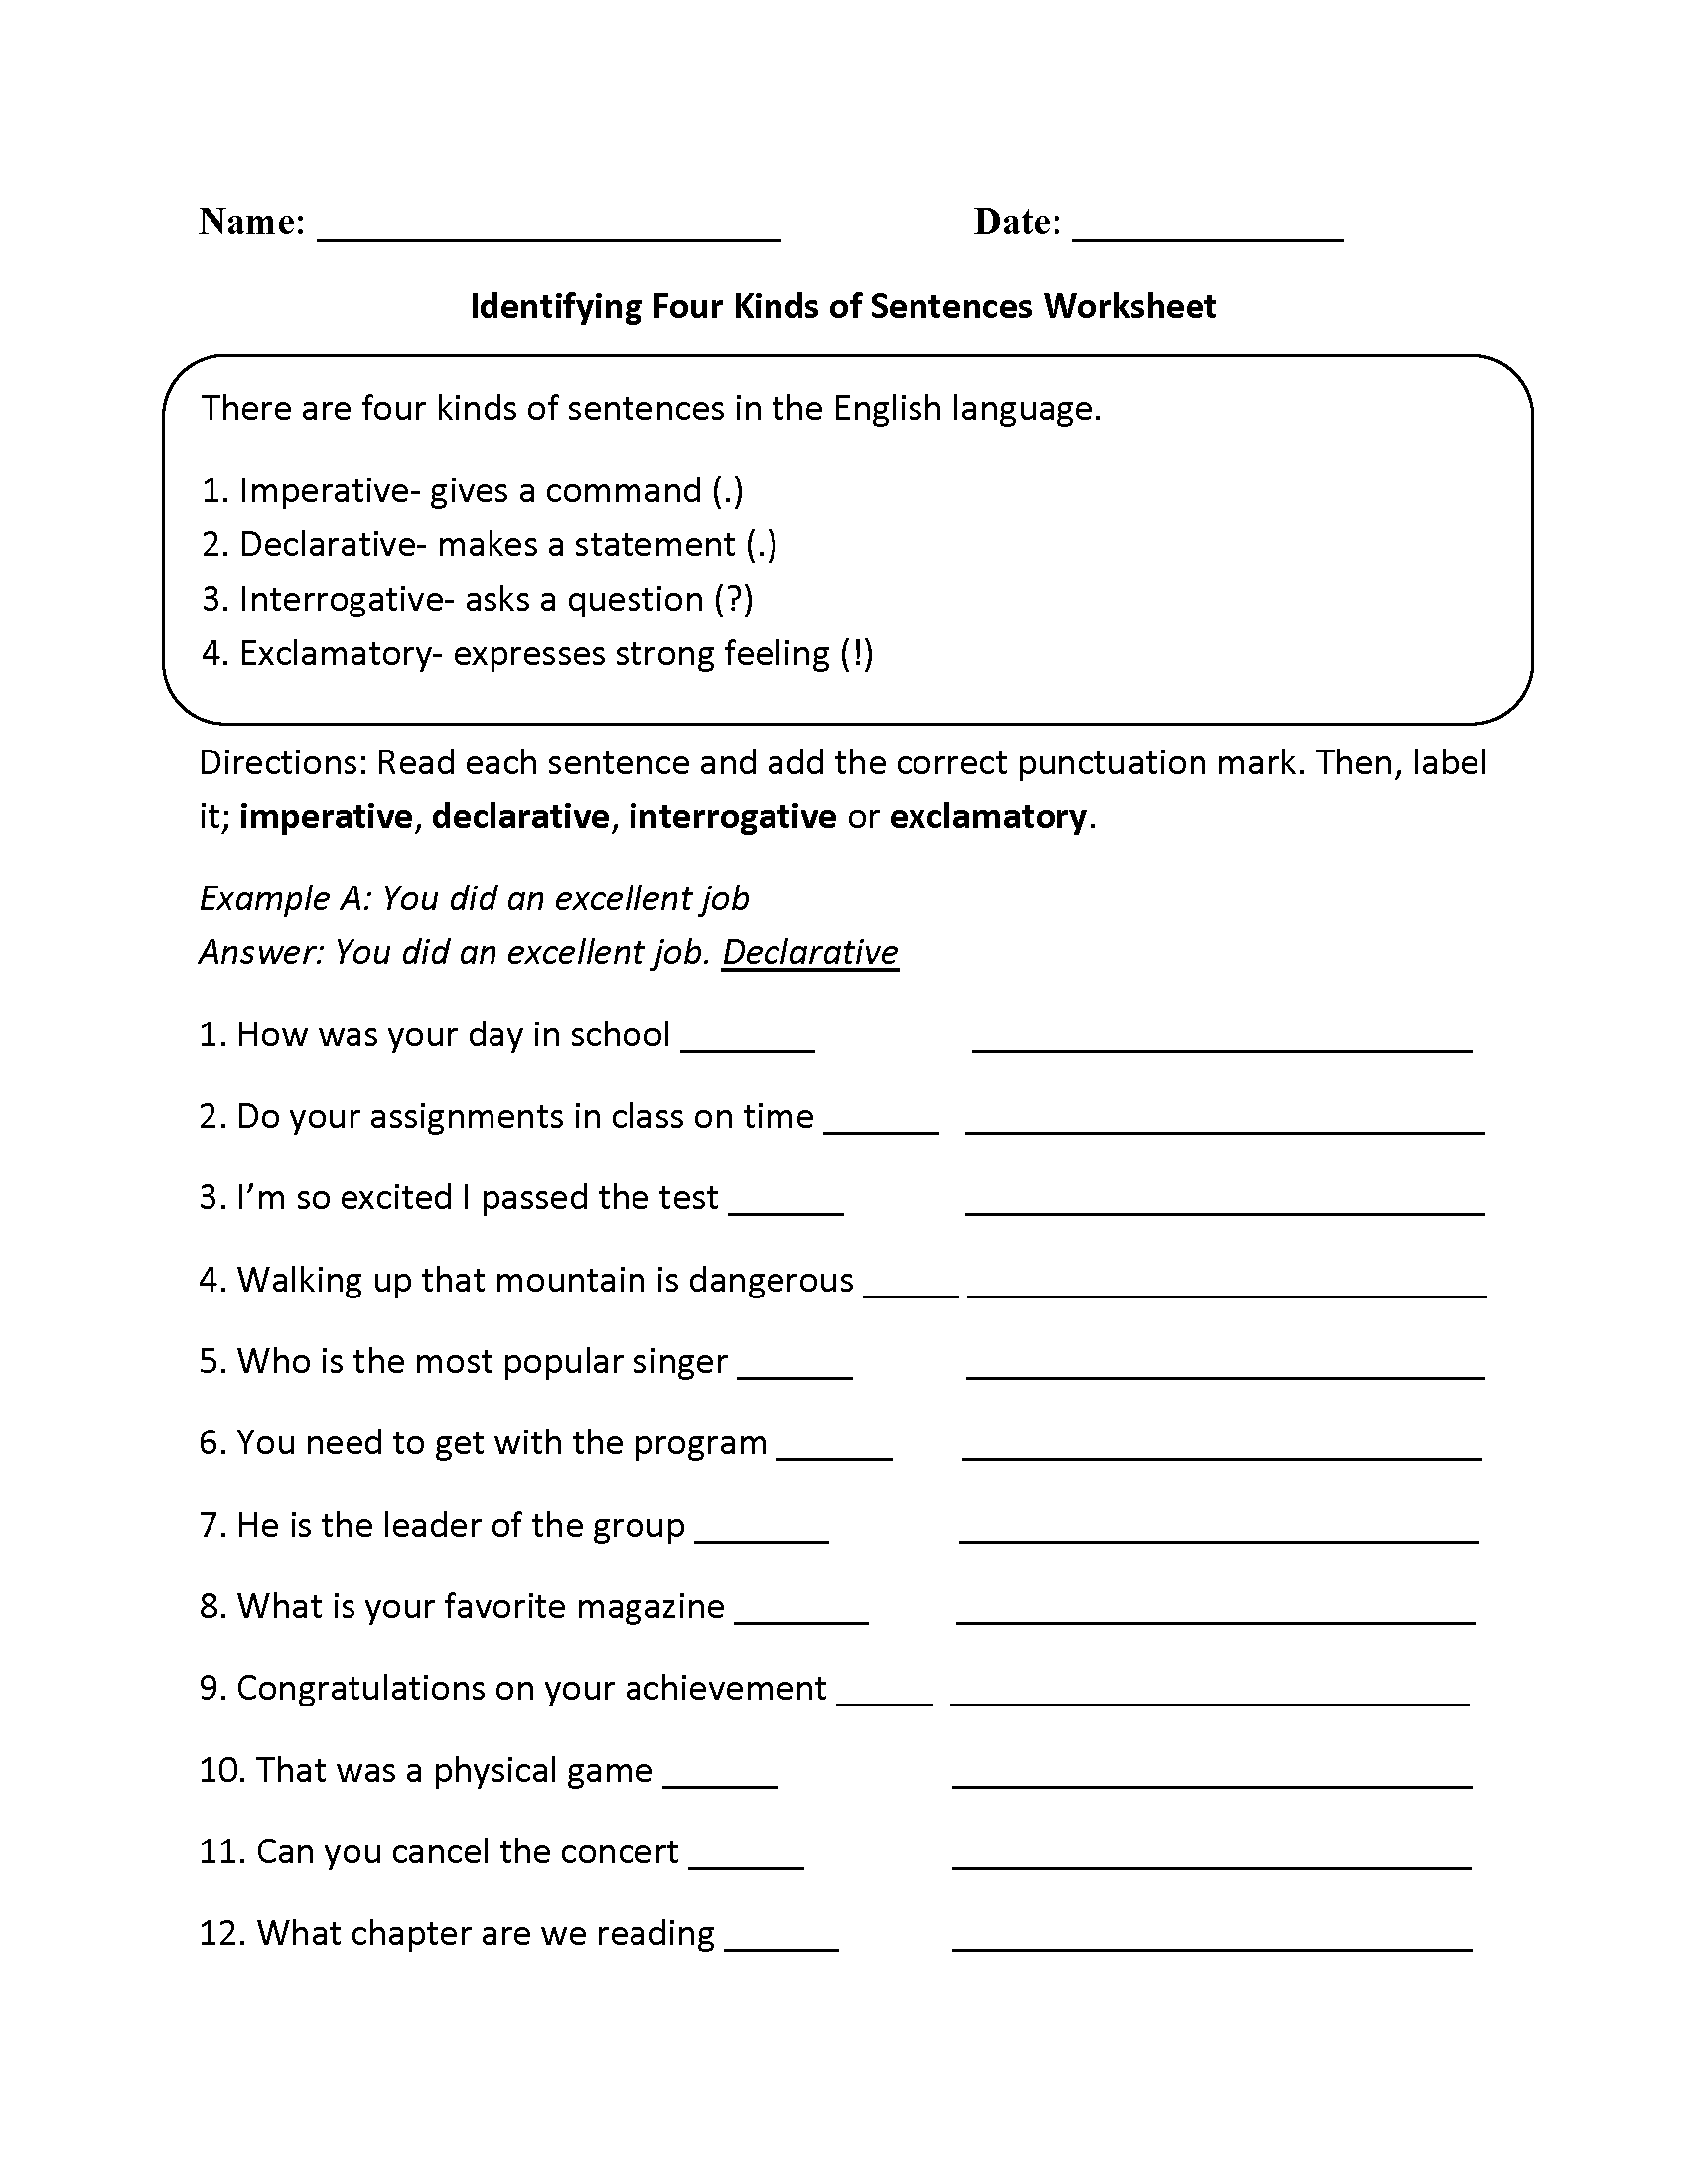 Worksheets Four Types Of Sentences Worksheets sentences worksheets kinds of four worksheet